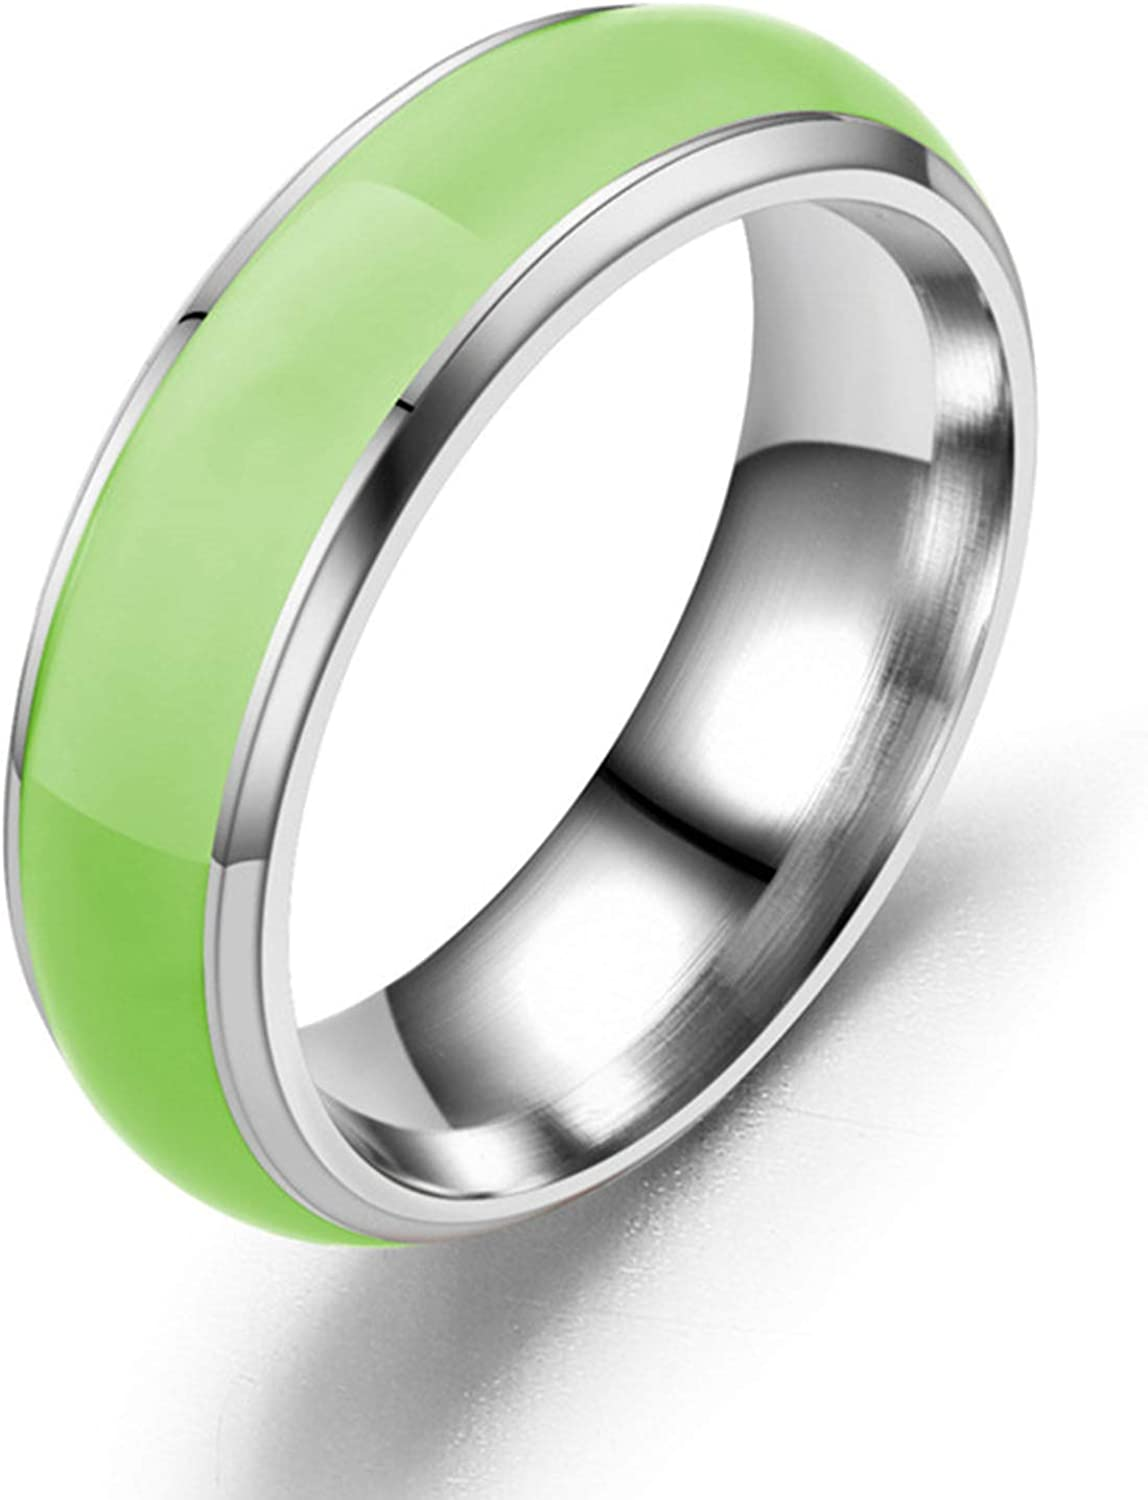 Gsdviyh36 Fashion Ring Simple Fashion Unisex Luminous Solid Color Glowing Ring Jewelry Accessory Show Your Beauty